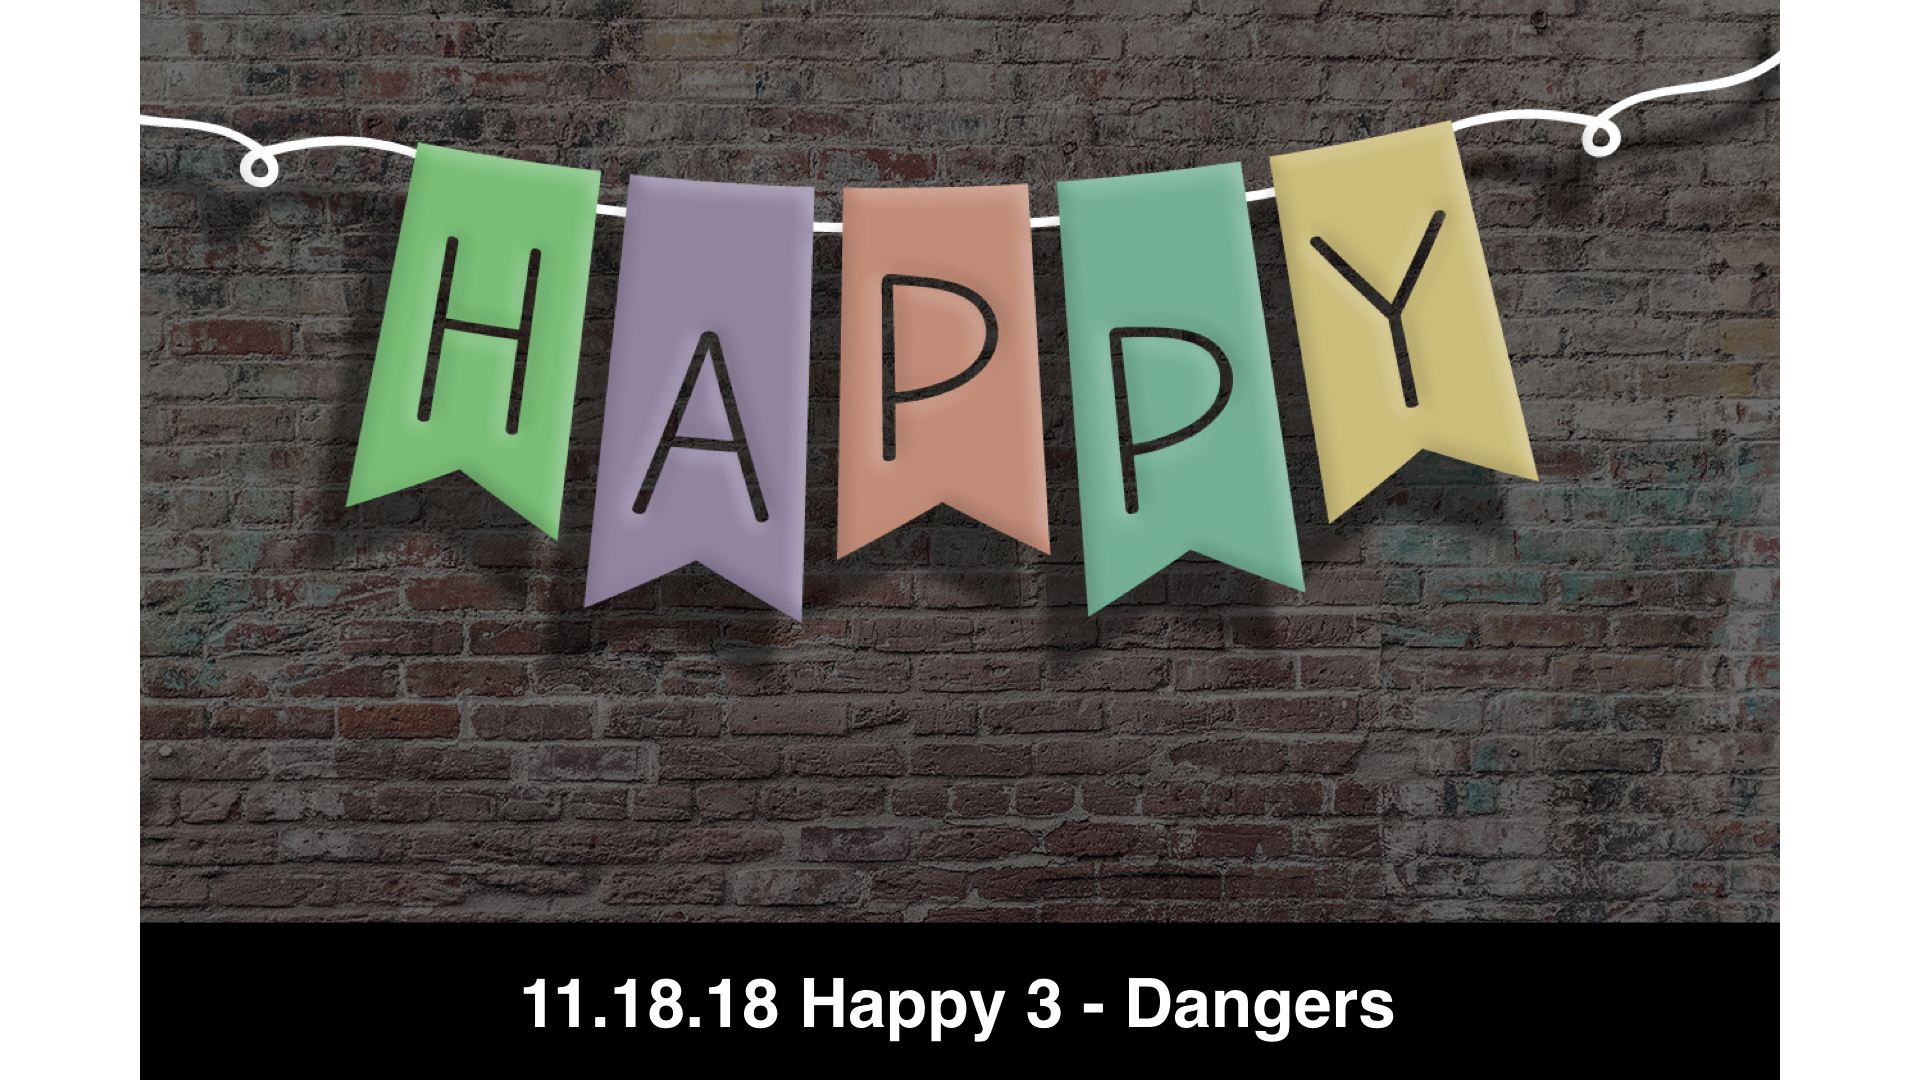 11.18.18 Happy 3 - Dangers